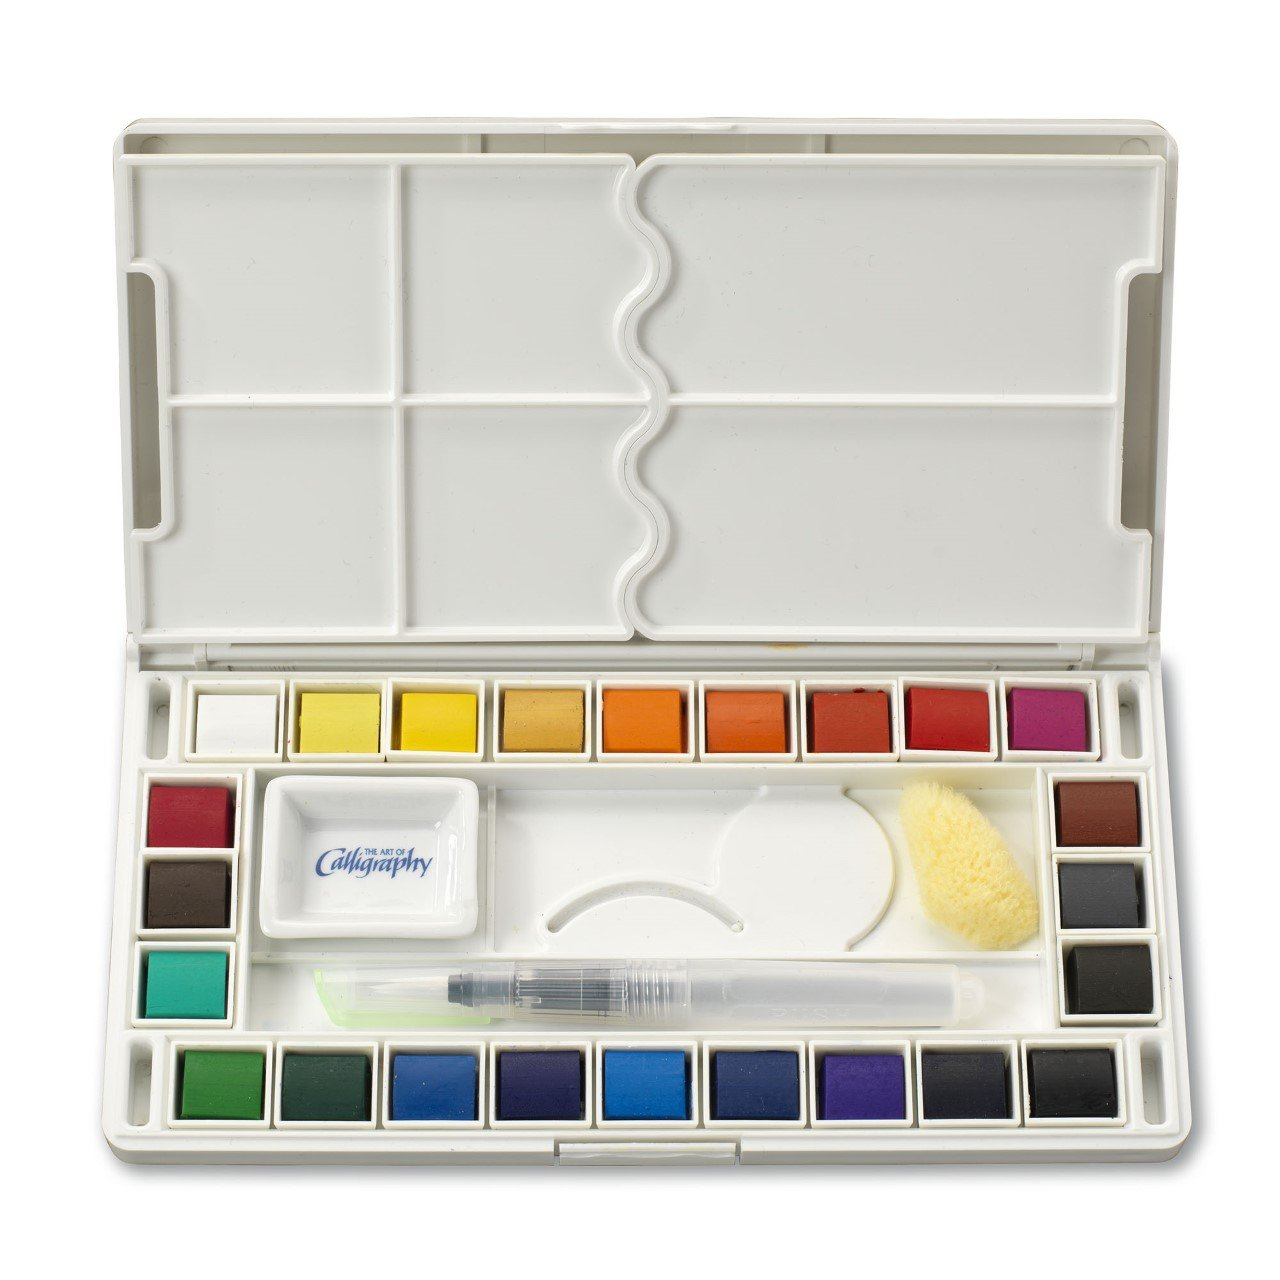 Jerry Q Art 24 Assorted Water Colors Travel Pocket Set- Free Refillable Water Brush With Sponge - Easy to Blend Colors - Built in Palette - Perfect For Painting On The Go JQ-124